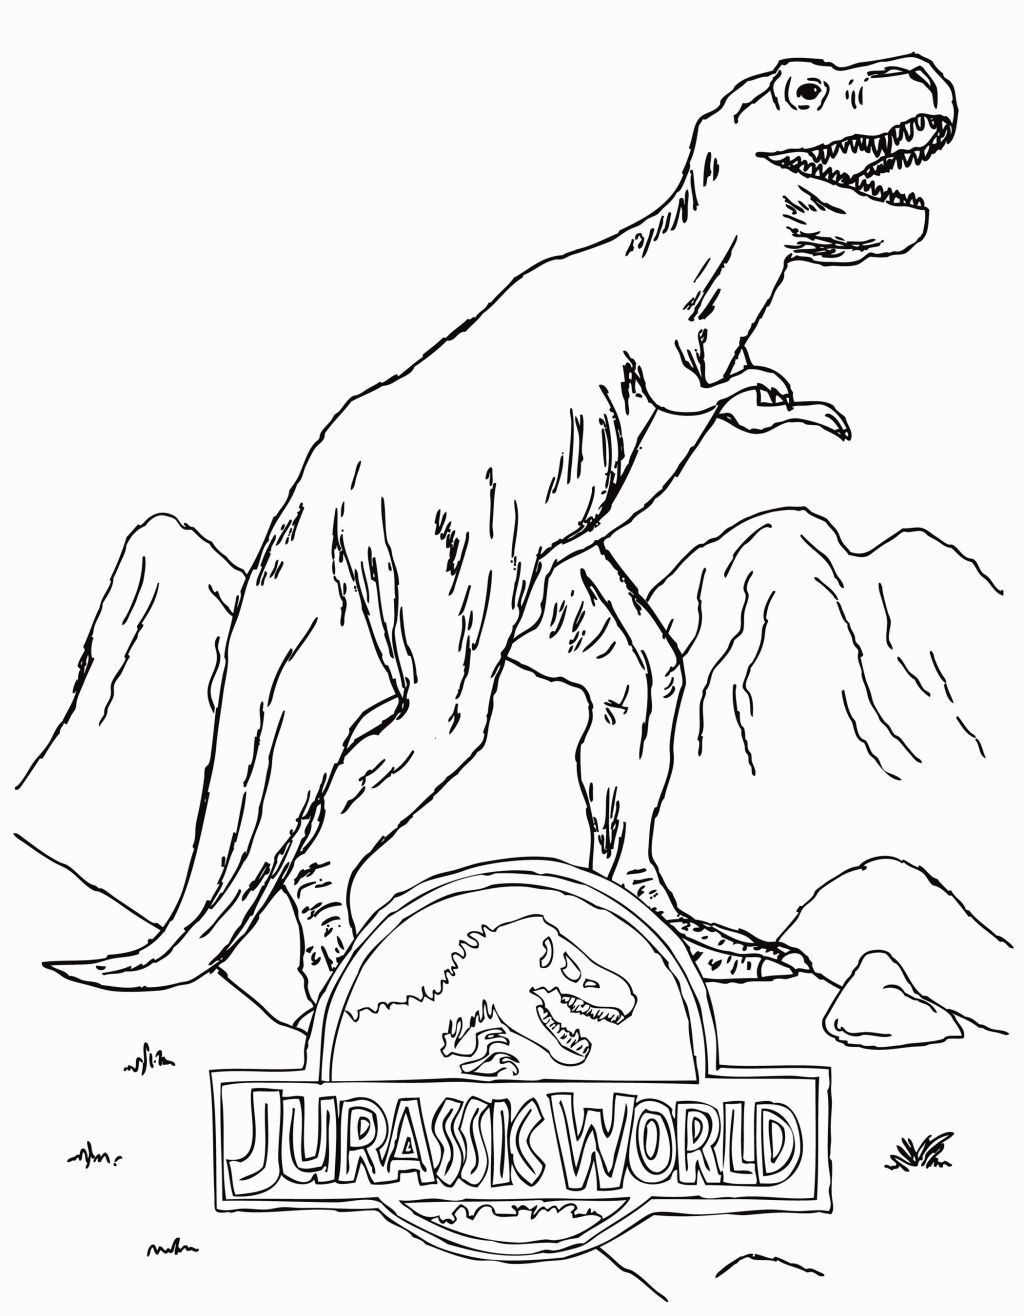 Jurassic World Coloring Sheets Coloring Pages Pinterest